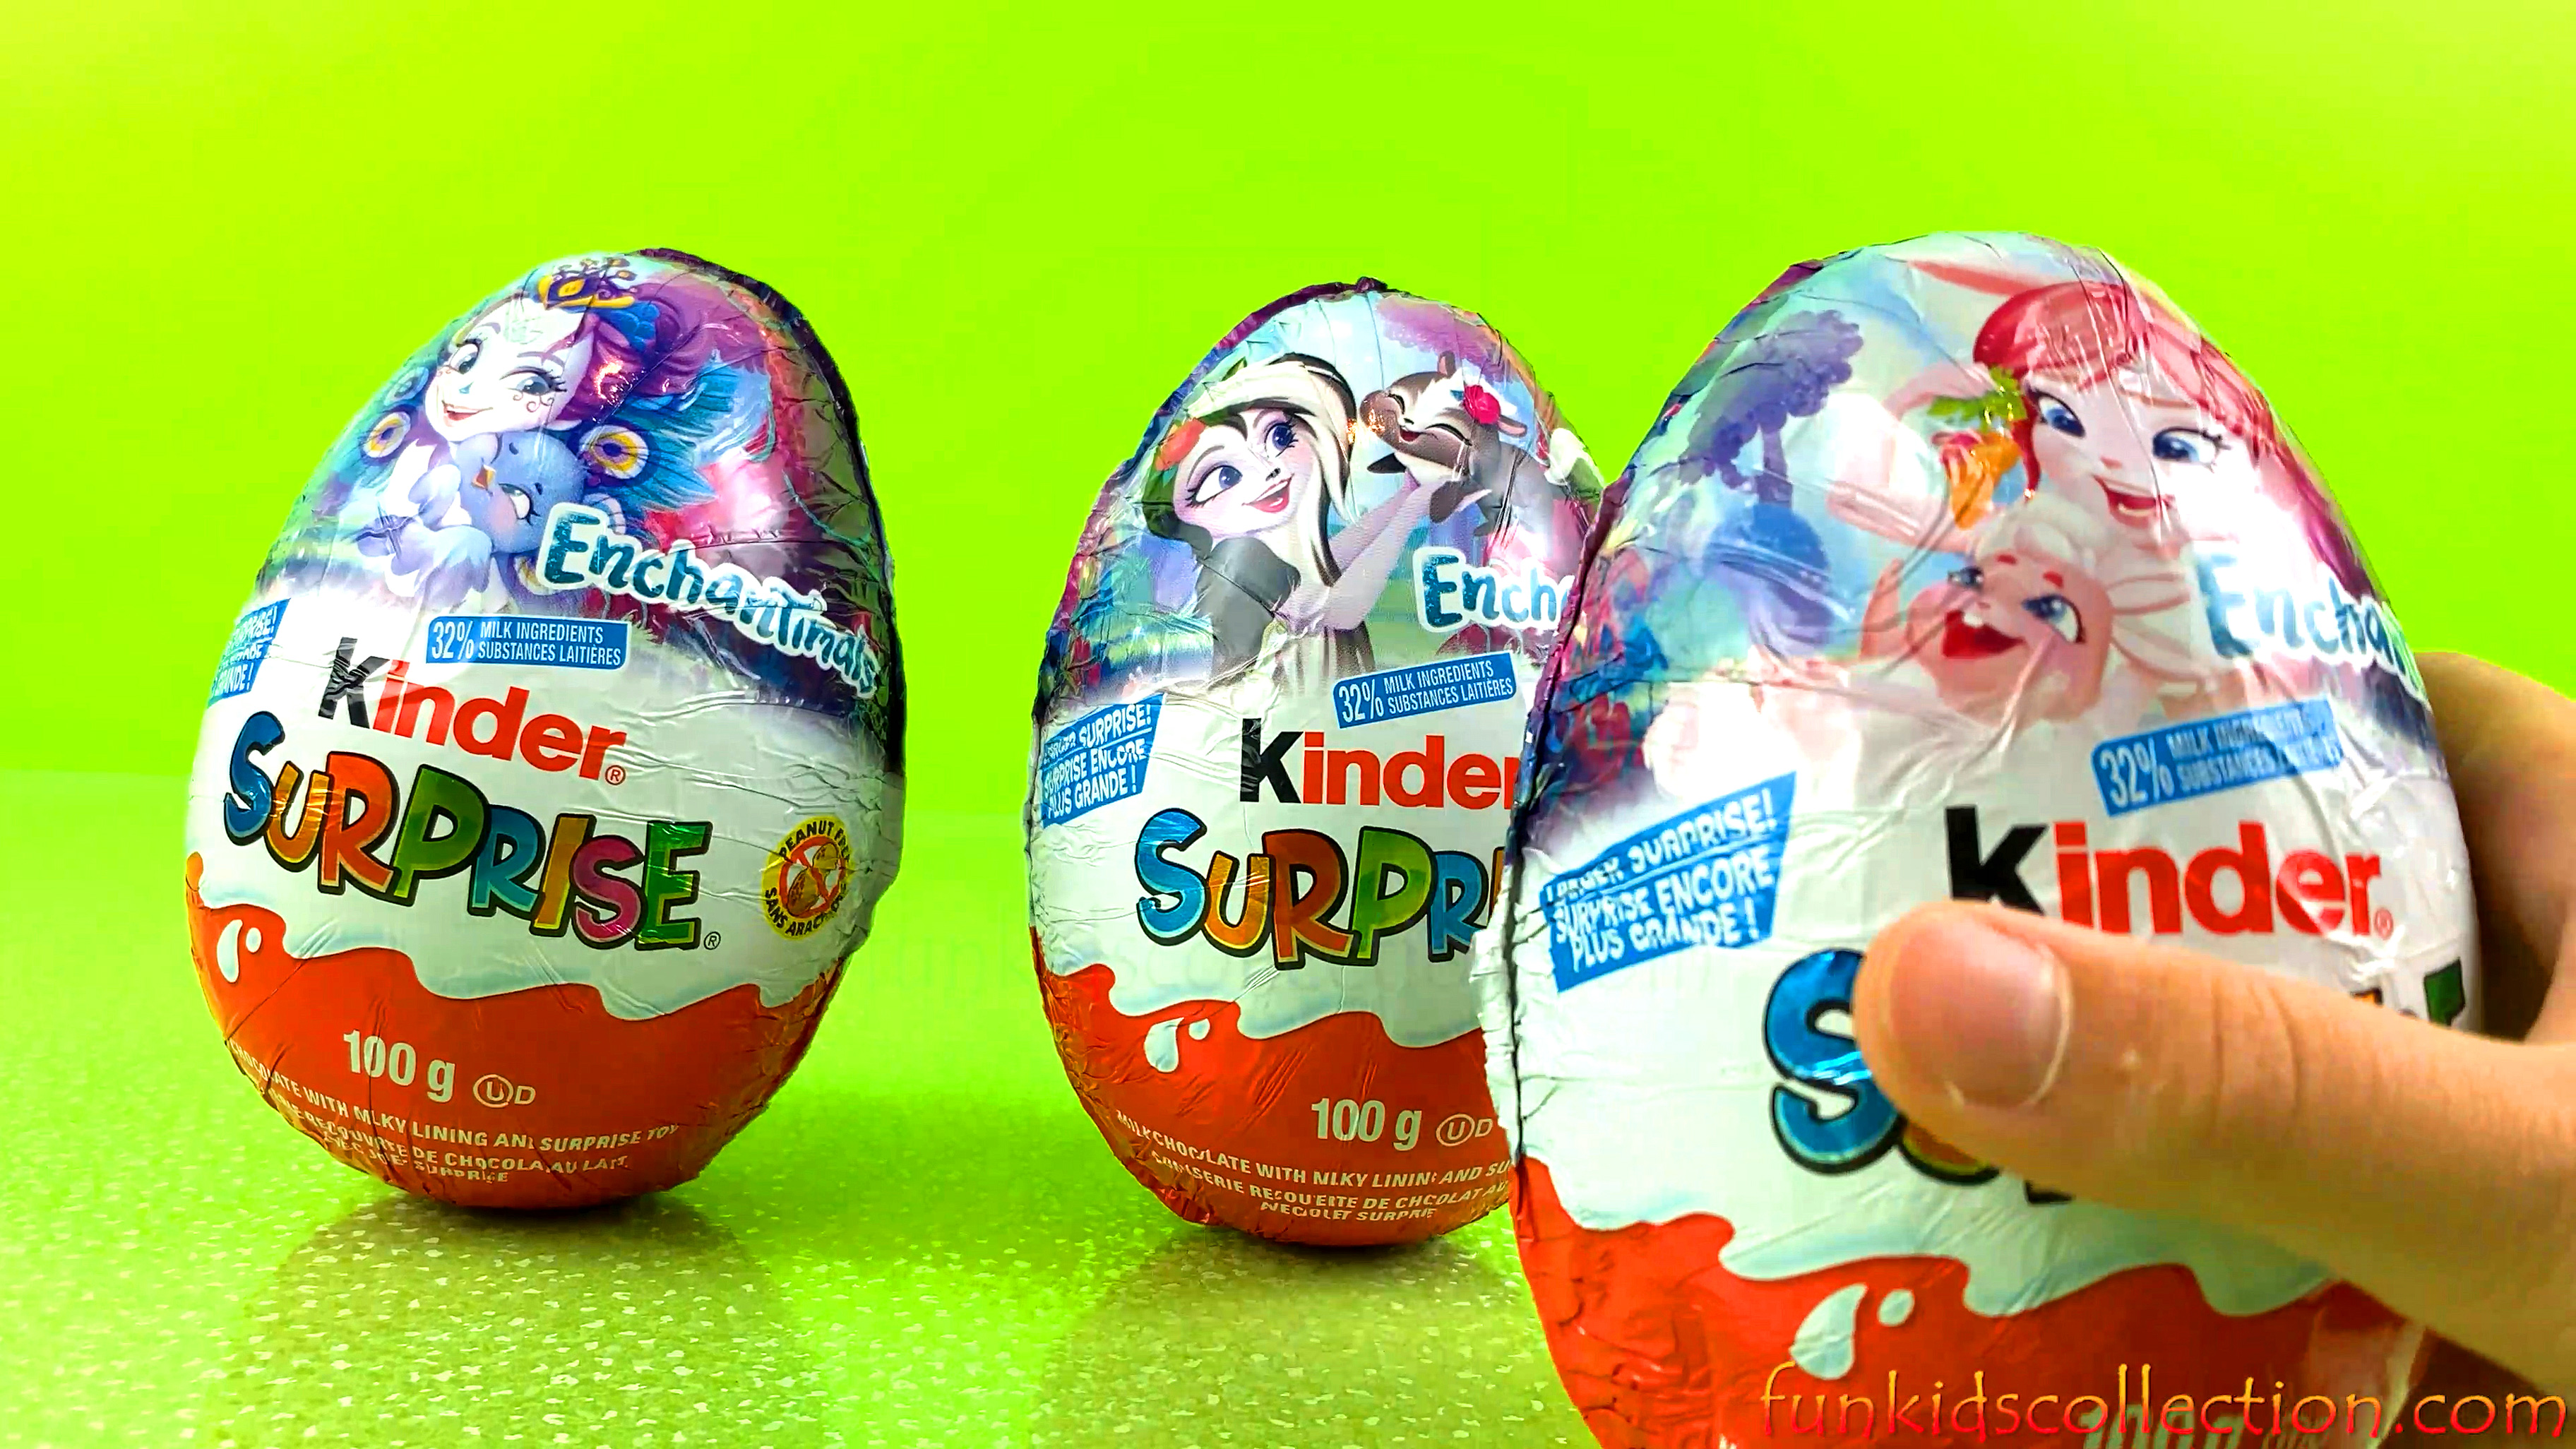 Opening Enchantimals Big Kinder Egg Surprises | Unwrapping Big Kinder Egg Surprises - EBD Toys